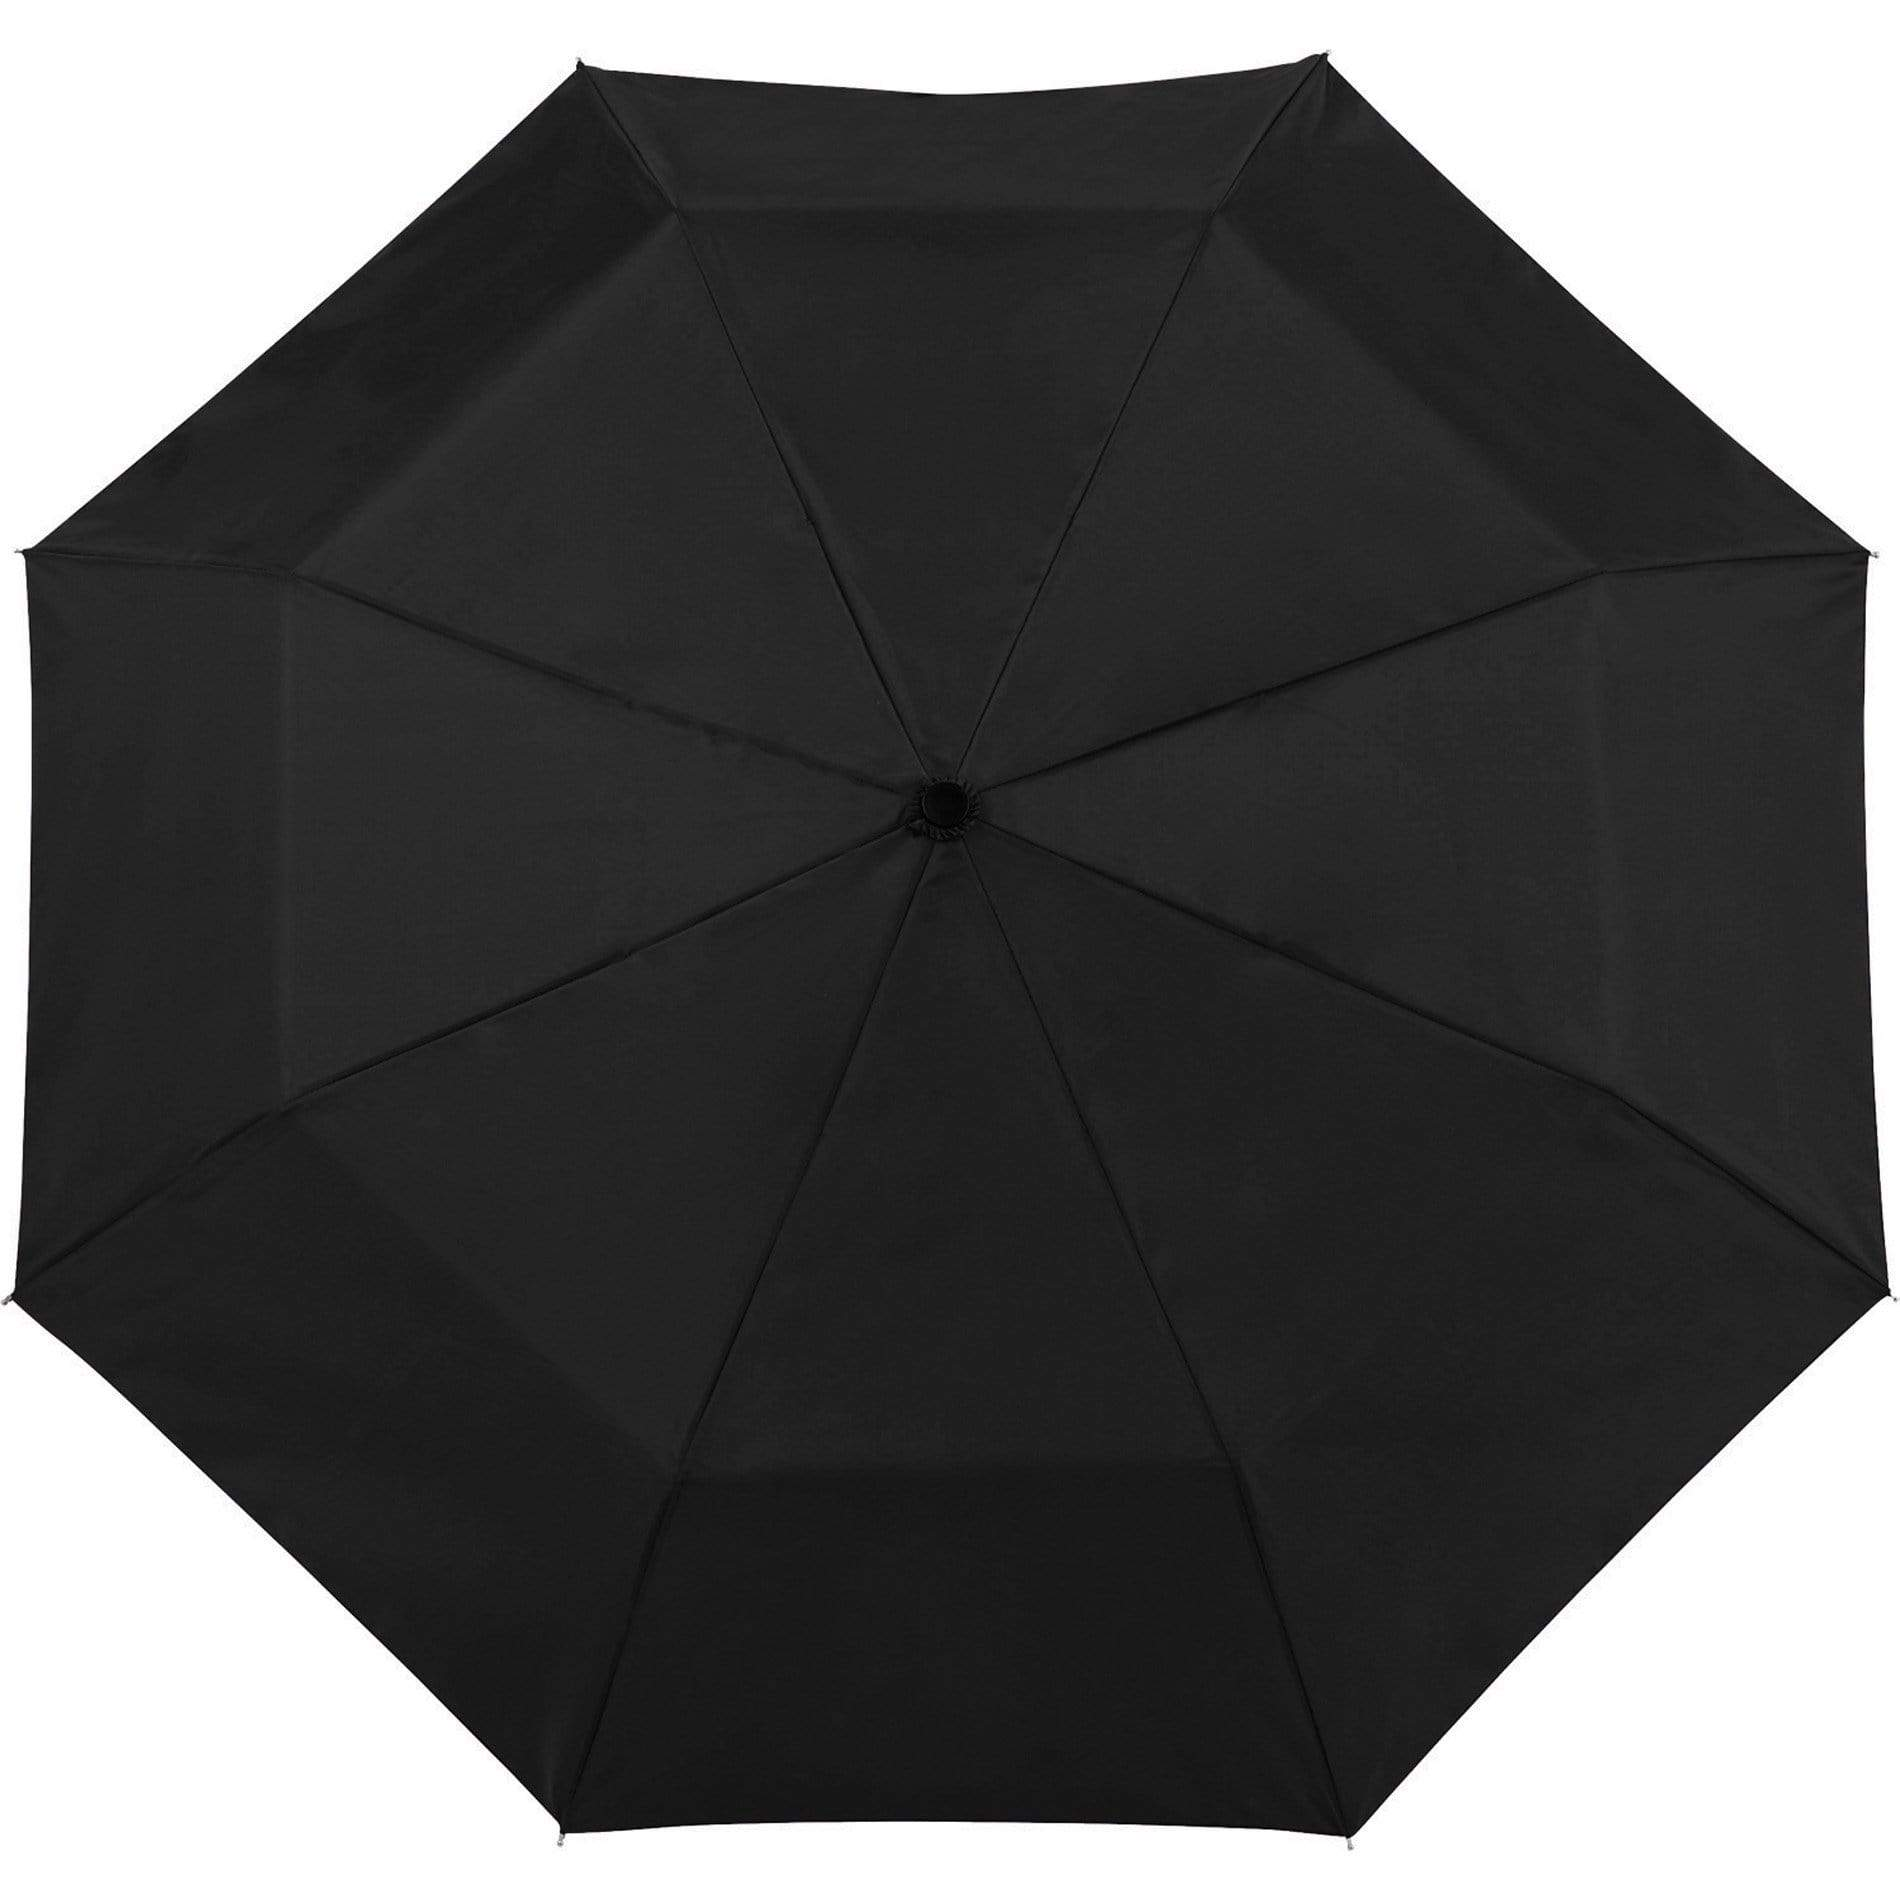 "Totes - 36 unit minimum Accessories 42"" / Black Totes - 42"" 3 Section Auto Open Umbrella"